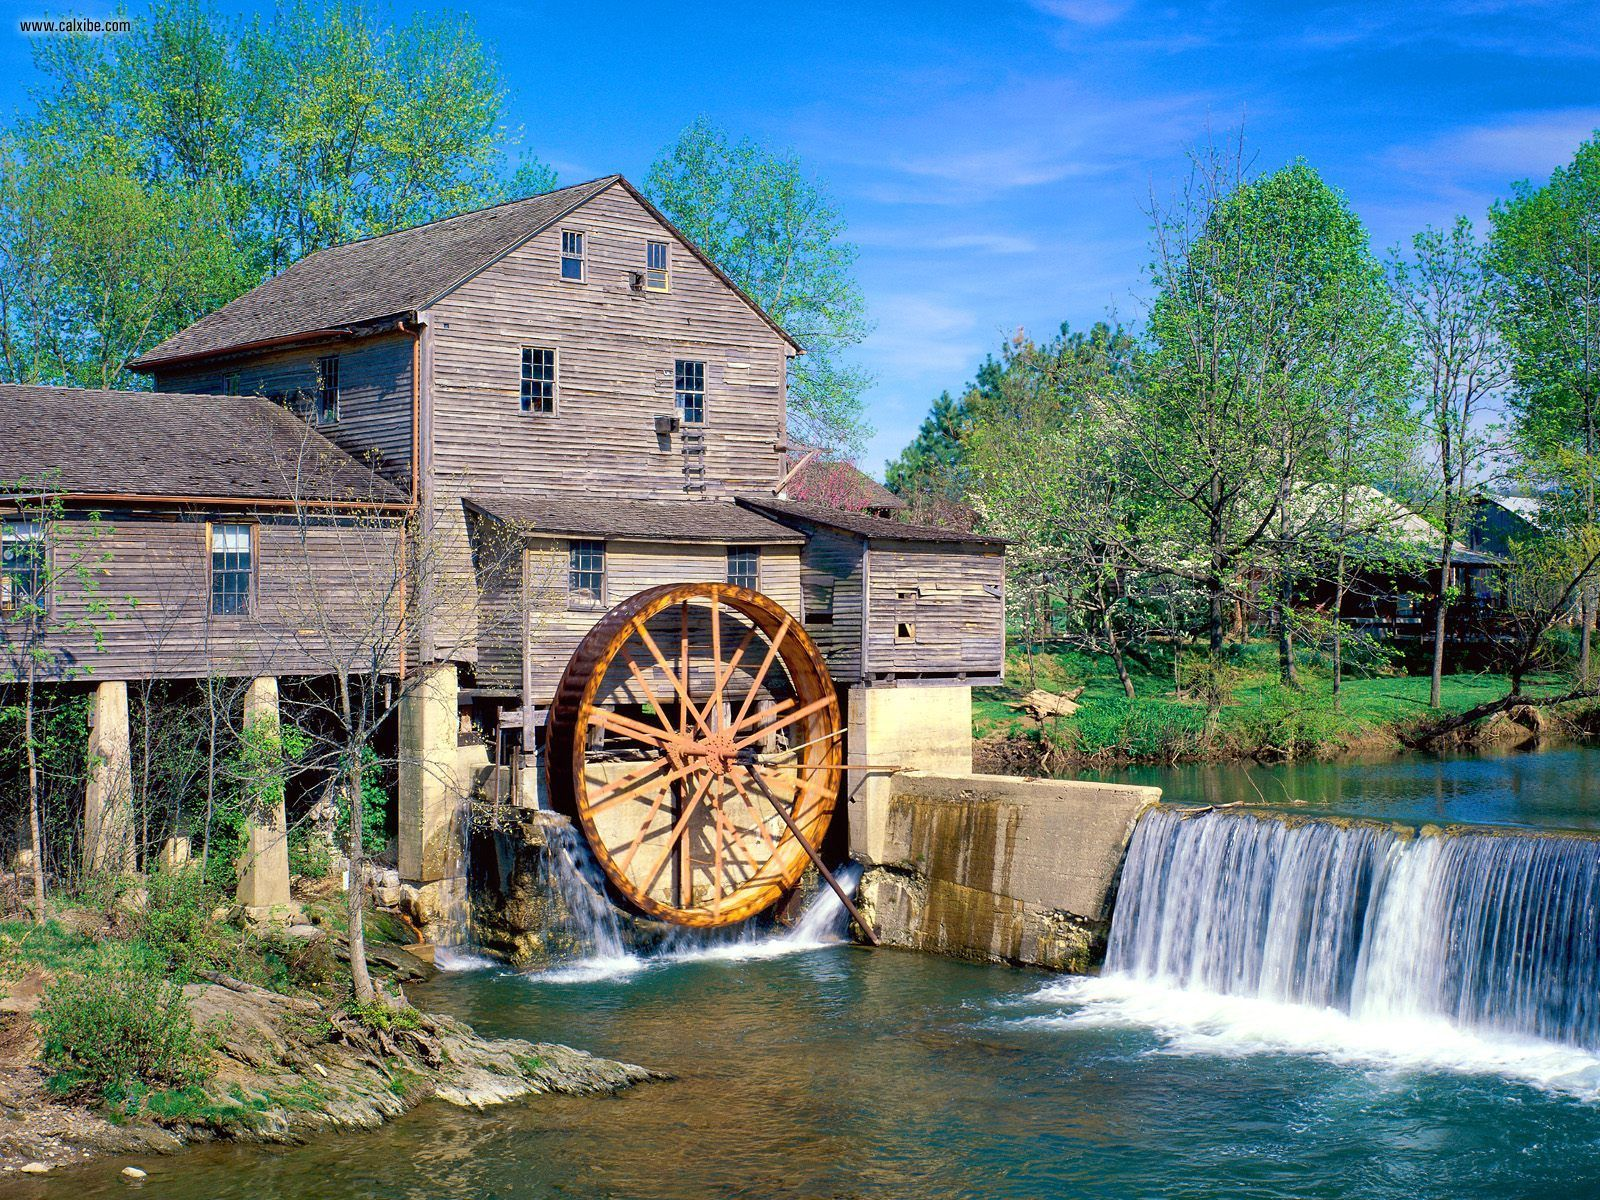 Old mill photo